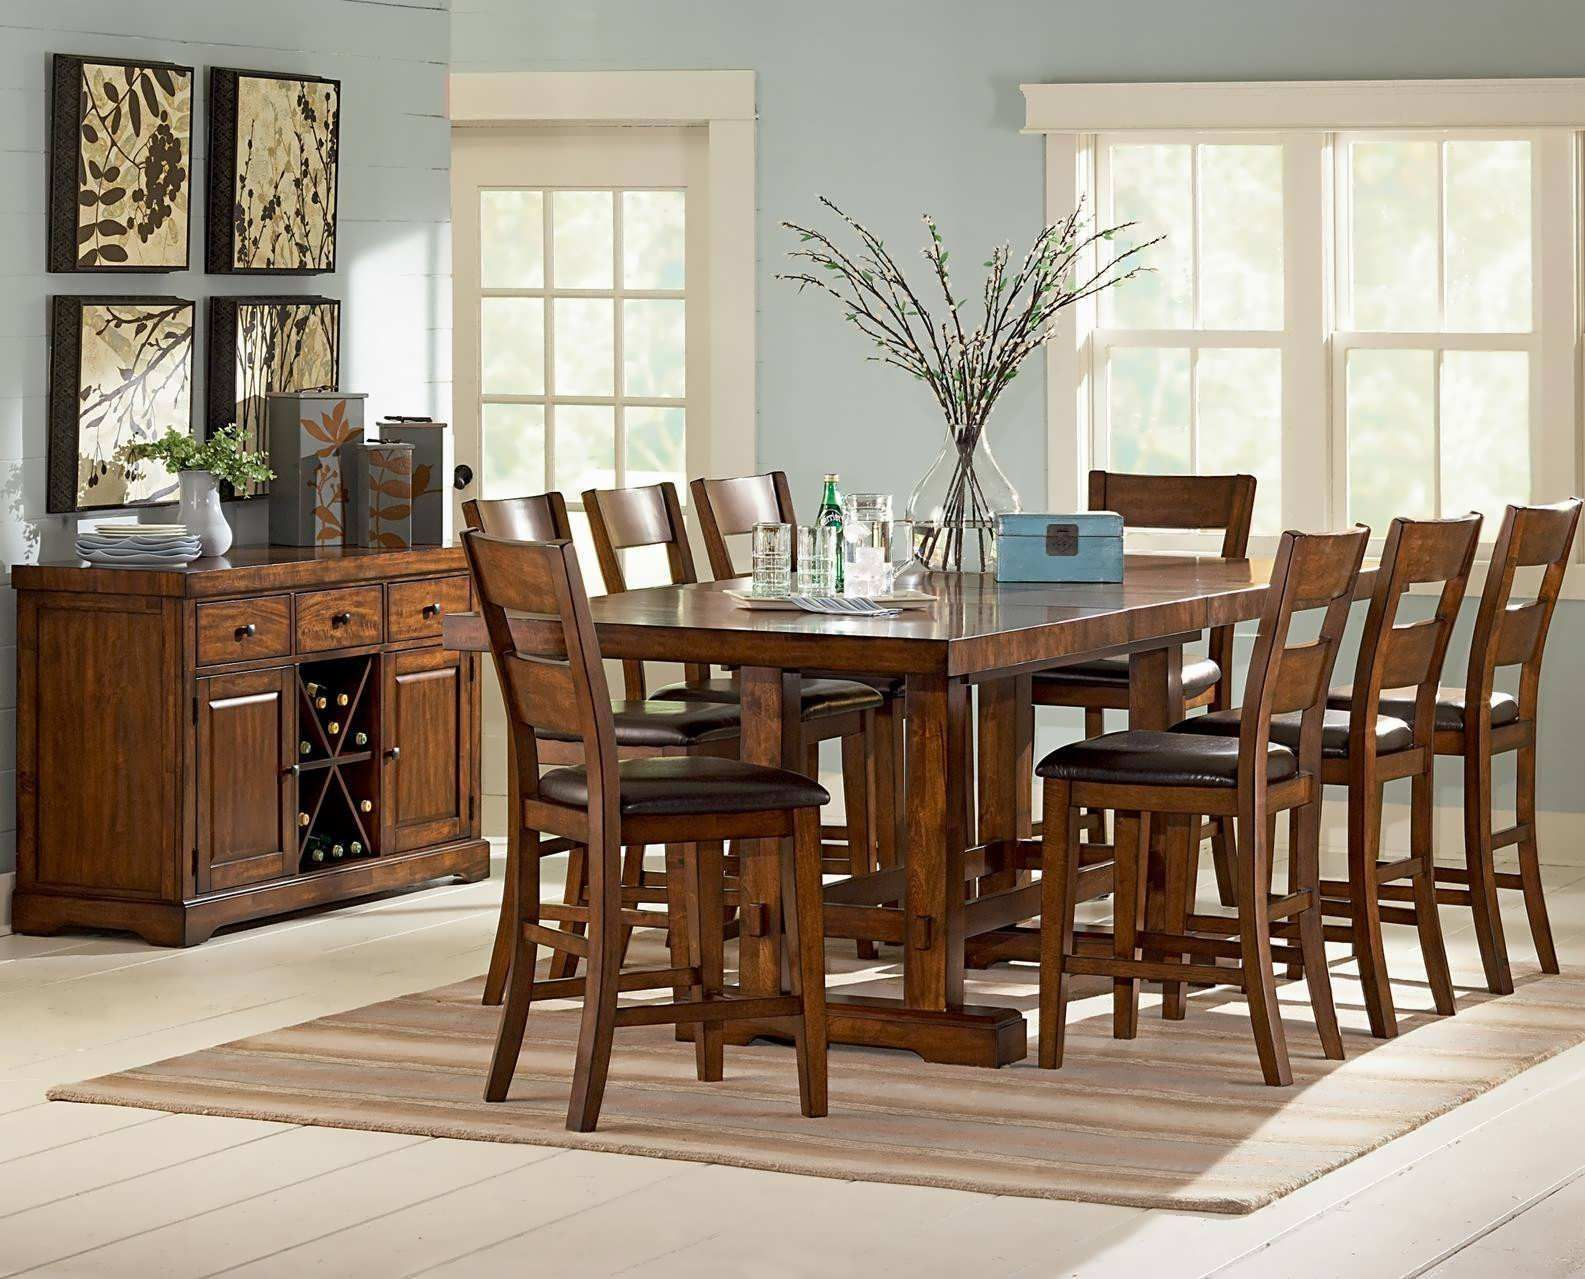 garrett counter height dining set consist of 8 piece counter